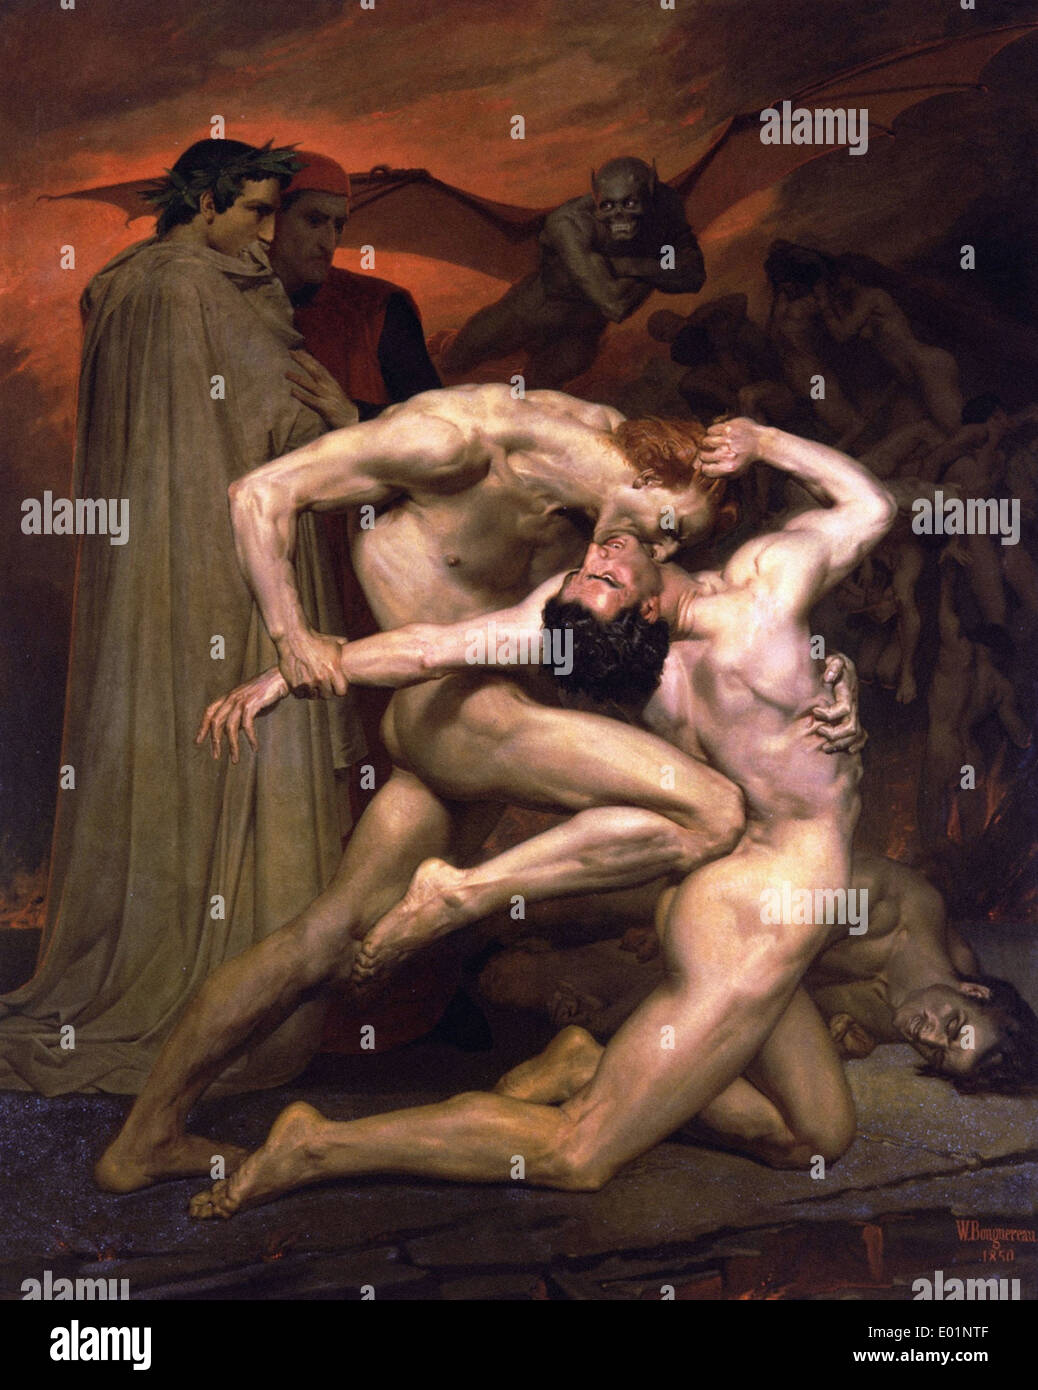 William Bouguereau Dante and Virgil in Hell Stock Photo